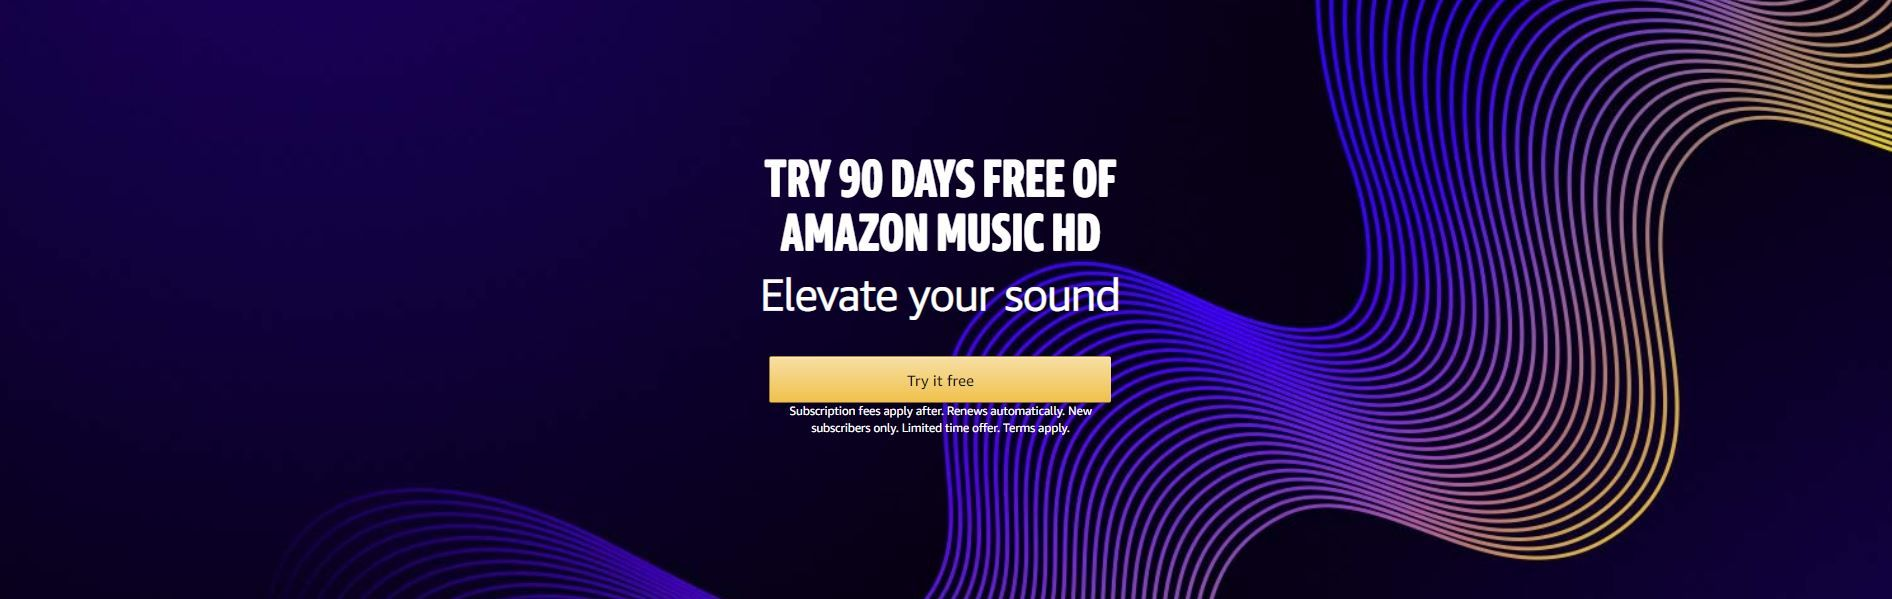 Uk Daily Deals Free 90 Day Trial Of Amazon Music Hd Purevpn For